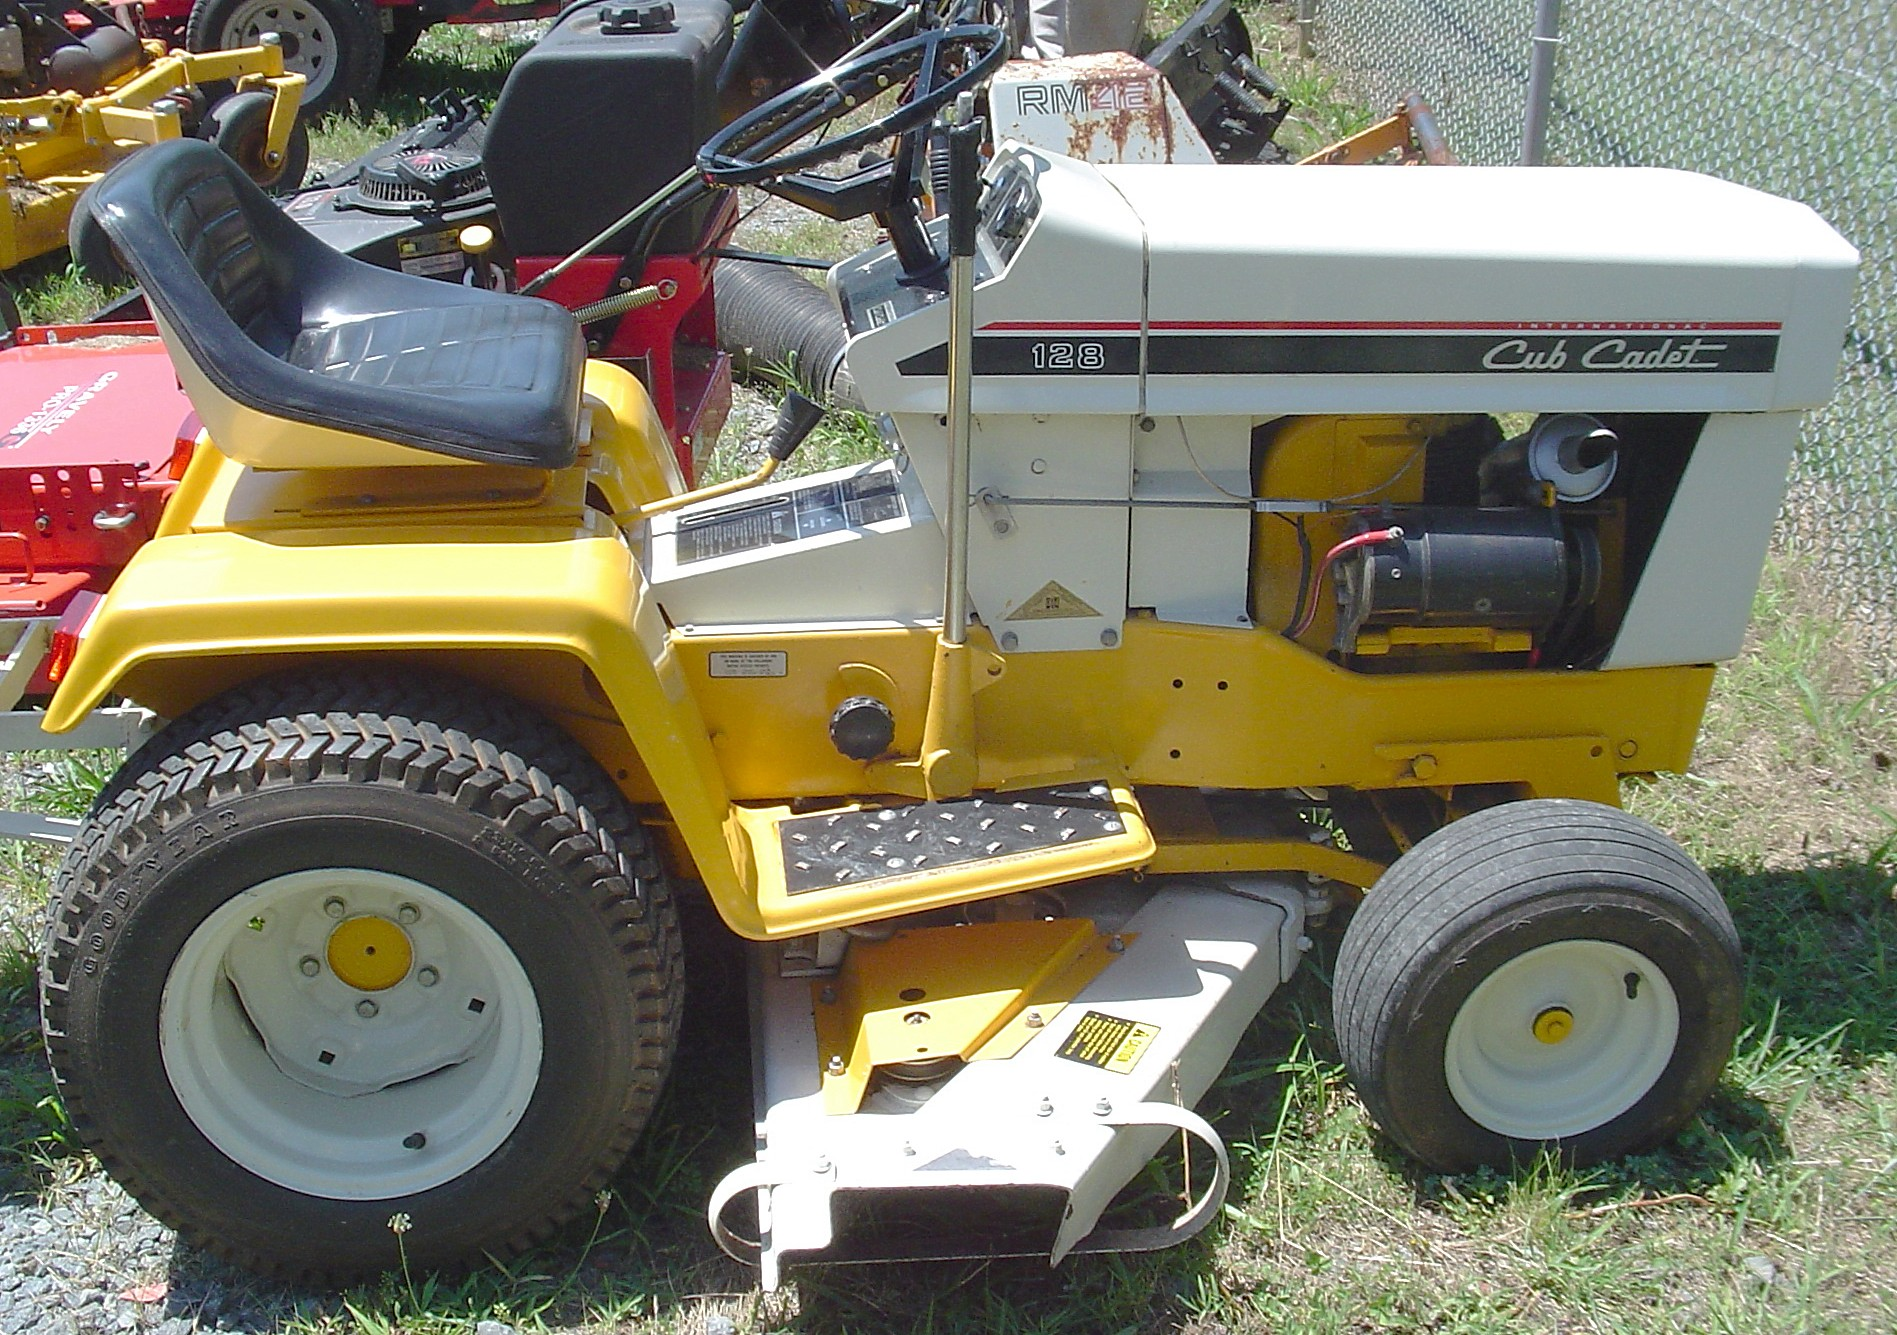 Wiring Diagram For Zetor Tractor Electrical Ih 300 Utility Cub Cadet Gt 2042 Trusted U2022 Lawn Tractors